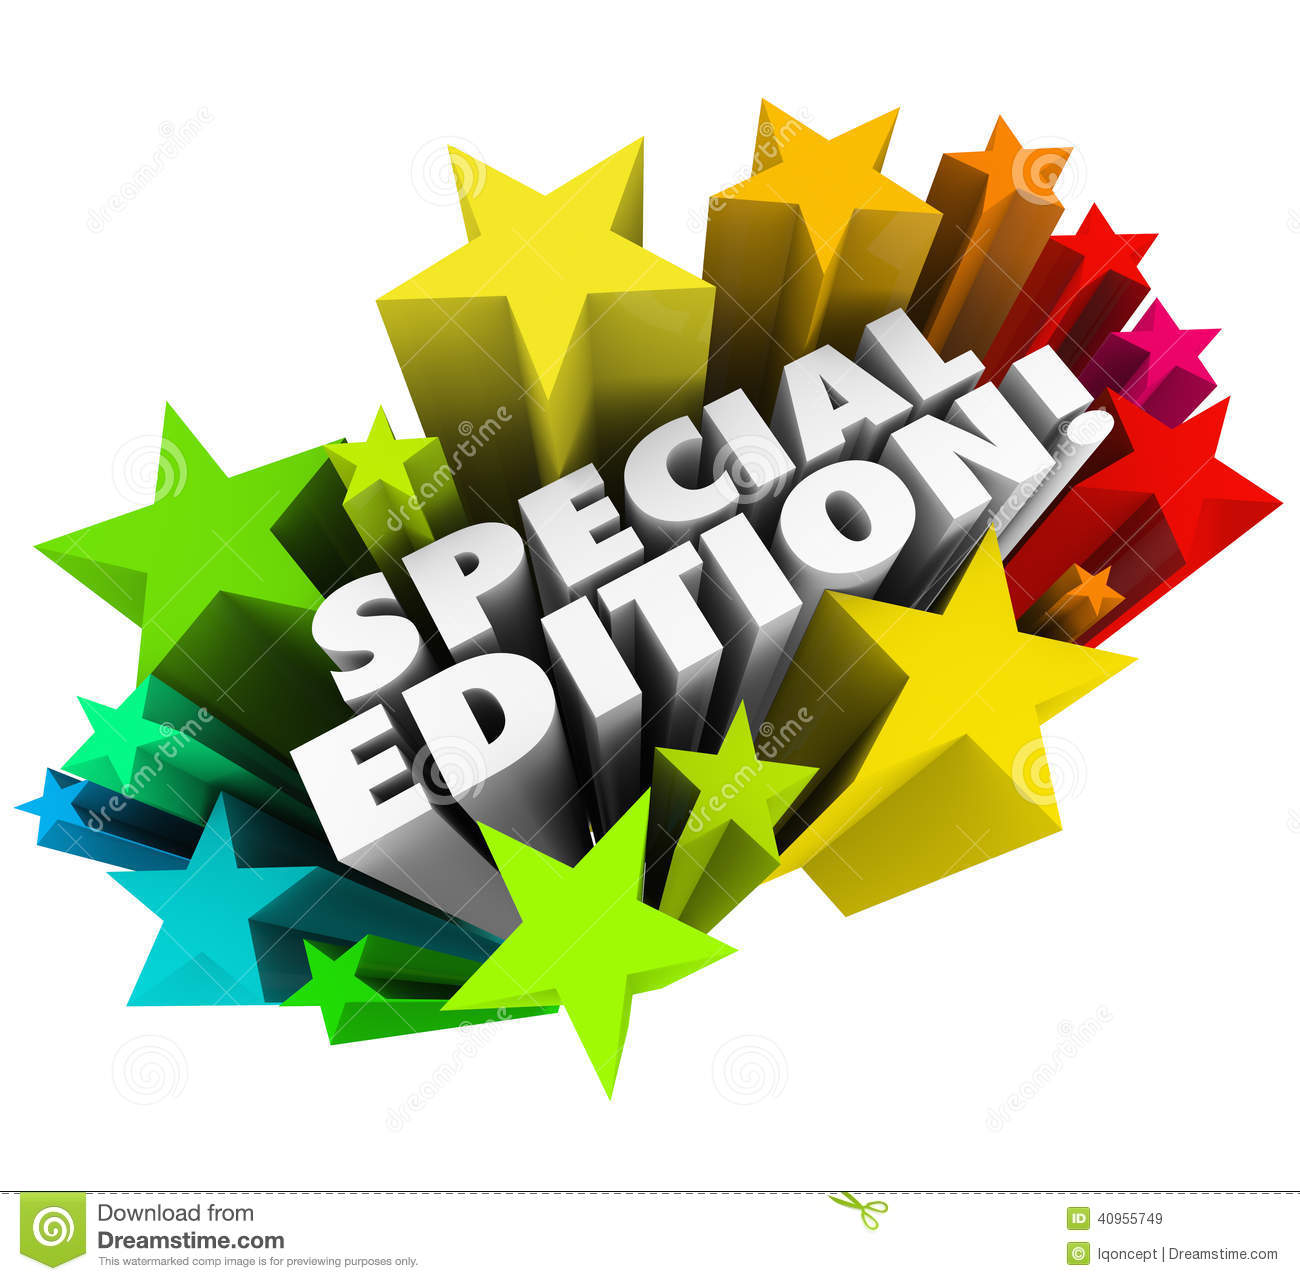 newest 9ba14 f08c4 Special Edition words in a colorful starburst or fireworks to advertise a  limited or collectors package, issue or version of a new product or service